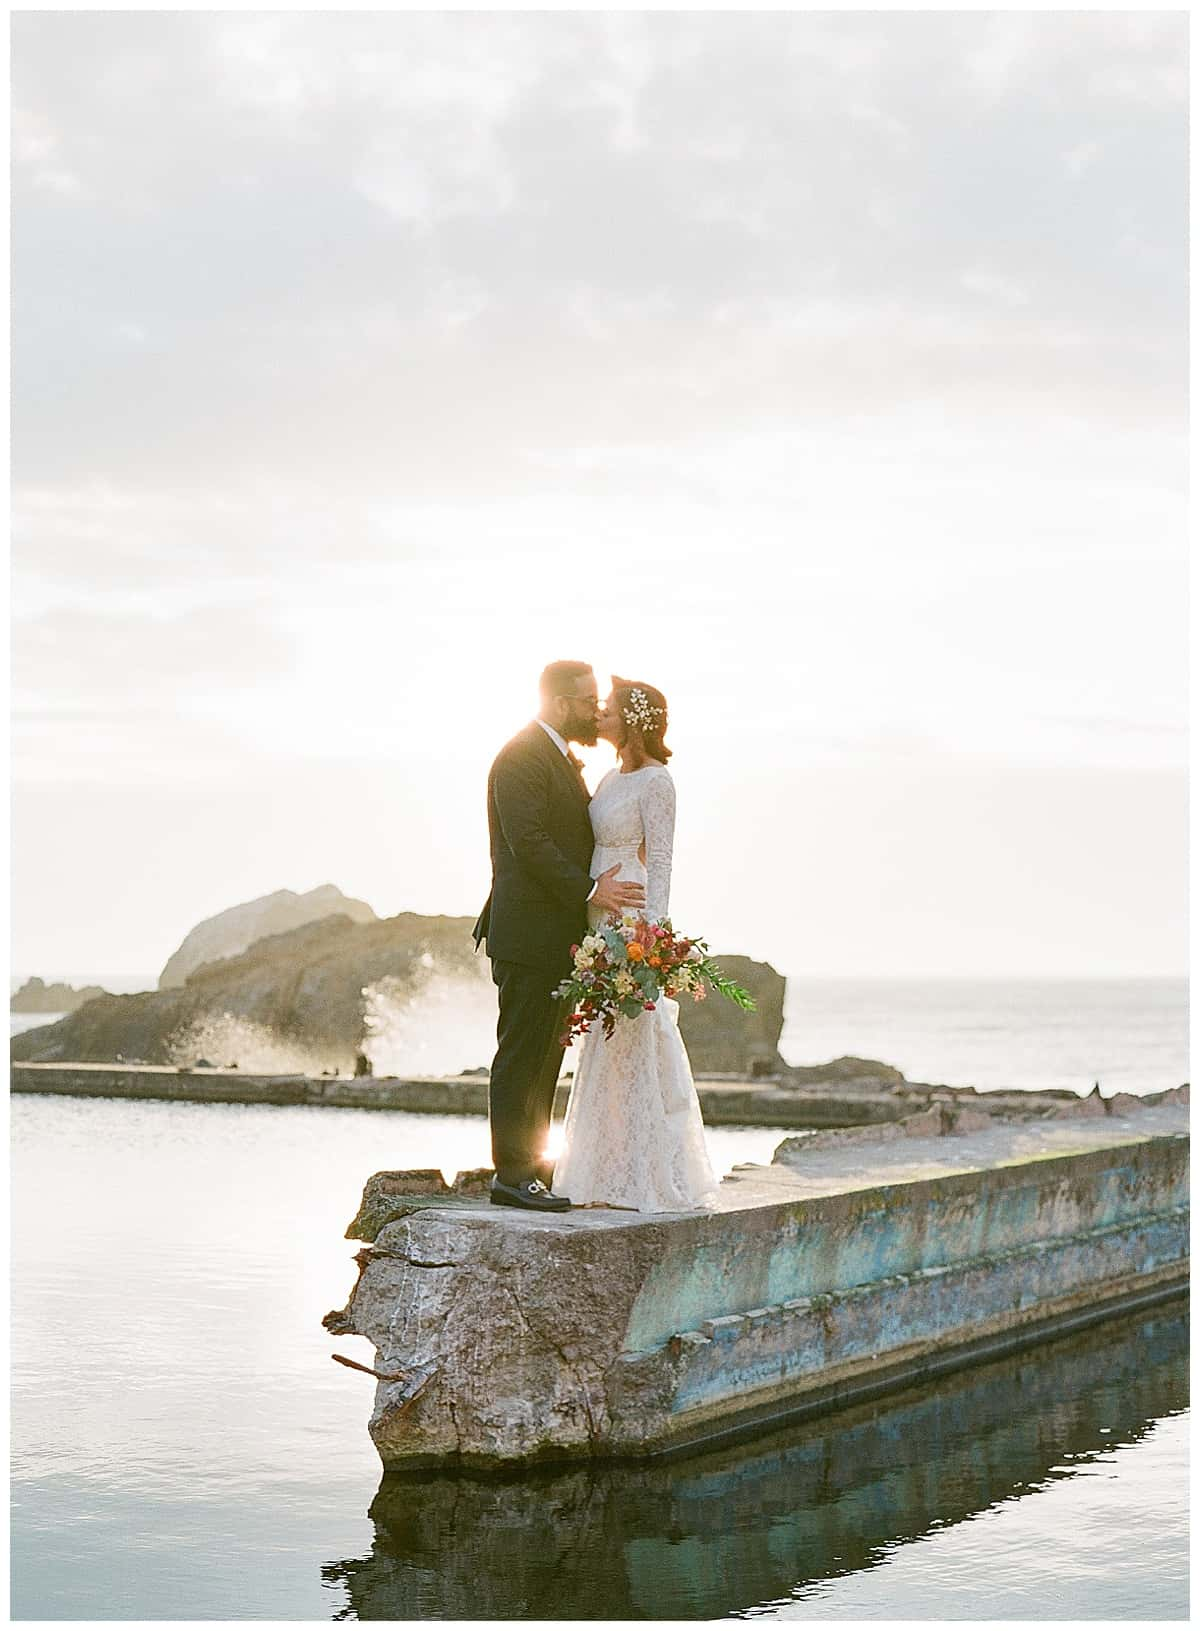 Sunset behind couple at Sutro Baths